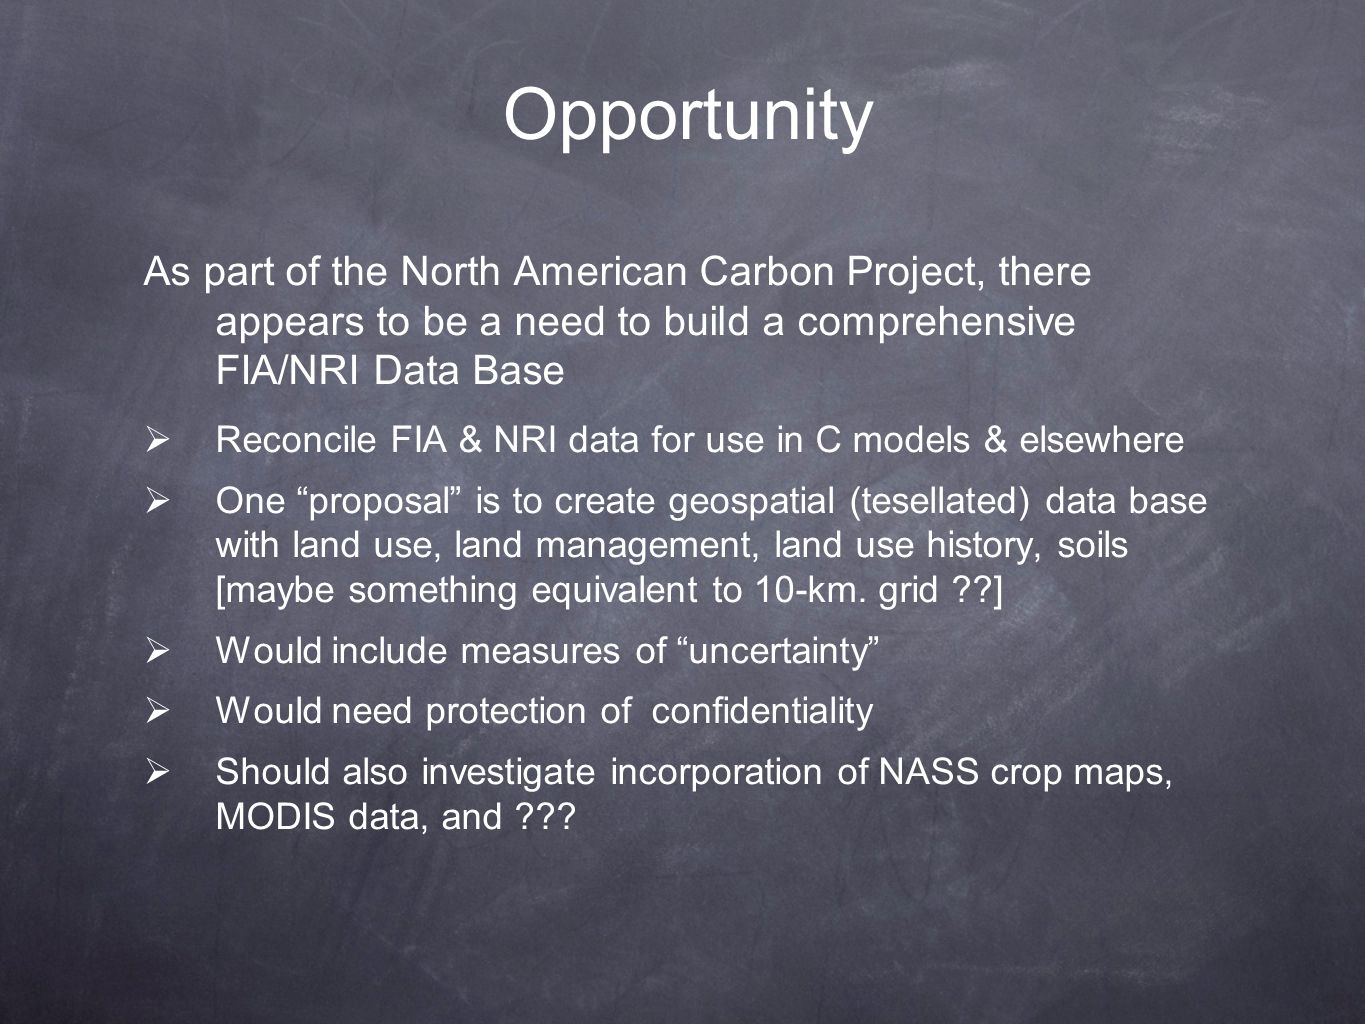 Opportunity As part of the North American Carbon Project, there appears to be a need to build a comprehensive FIA/NRI Data Base.